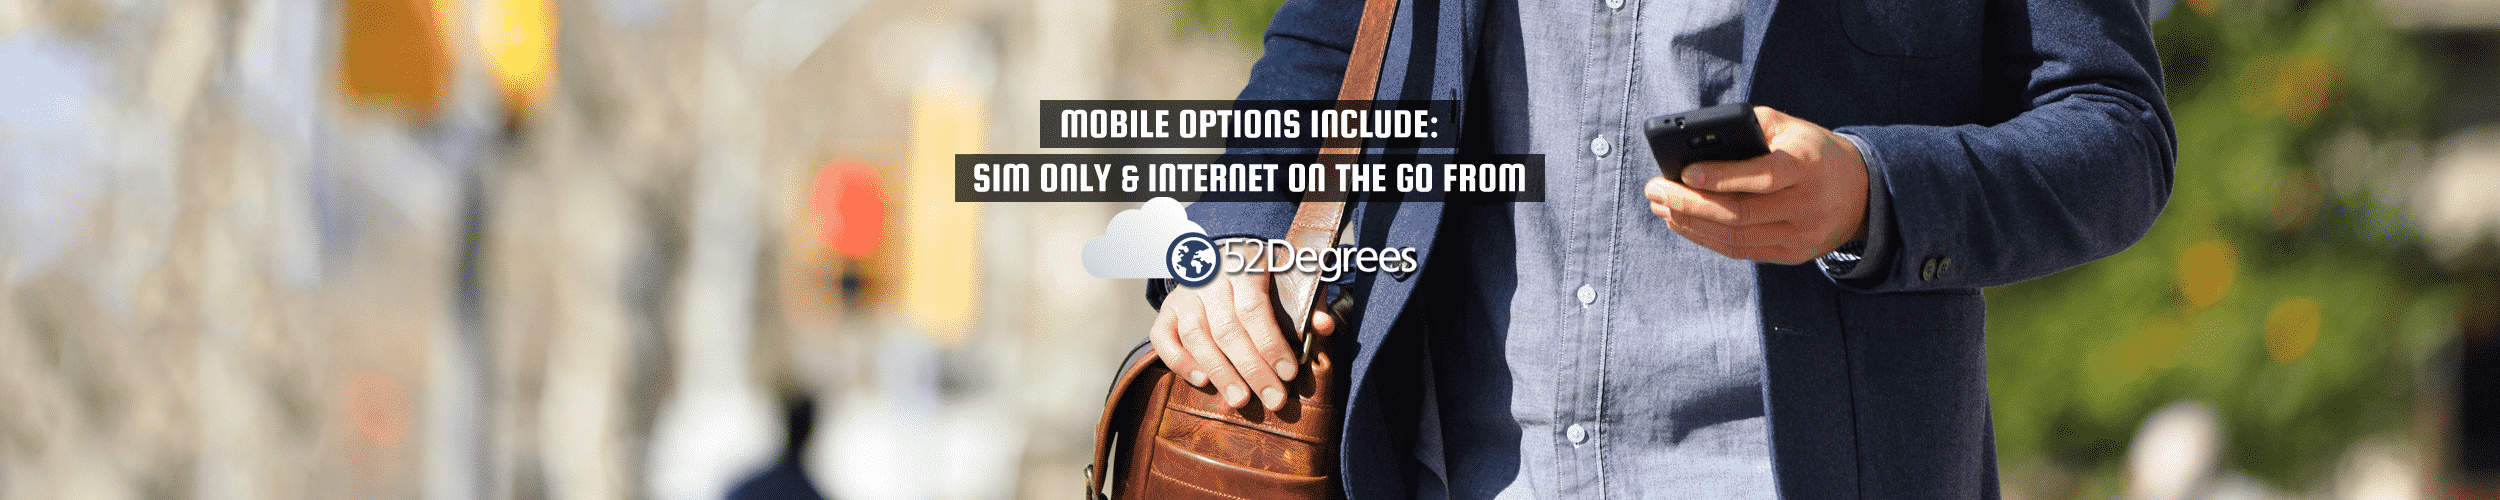 "52Degrees Mobile - feature image | ""mobile options include: SIM only & internet on the go"" 